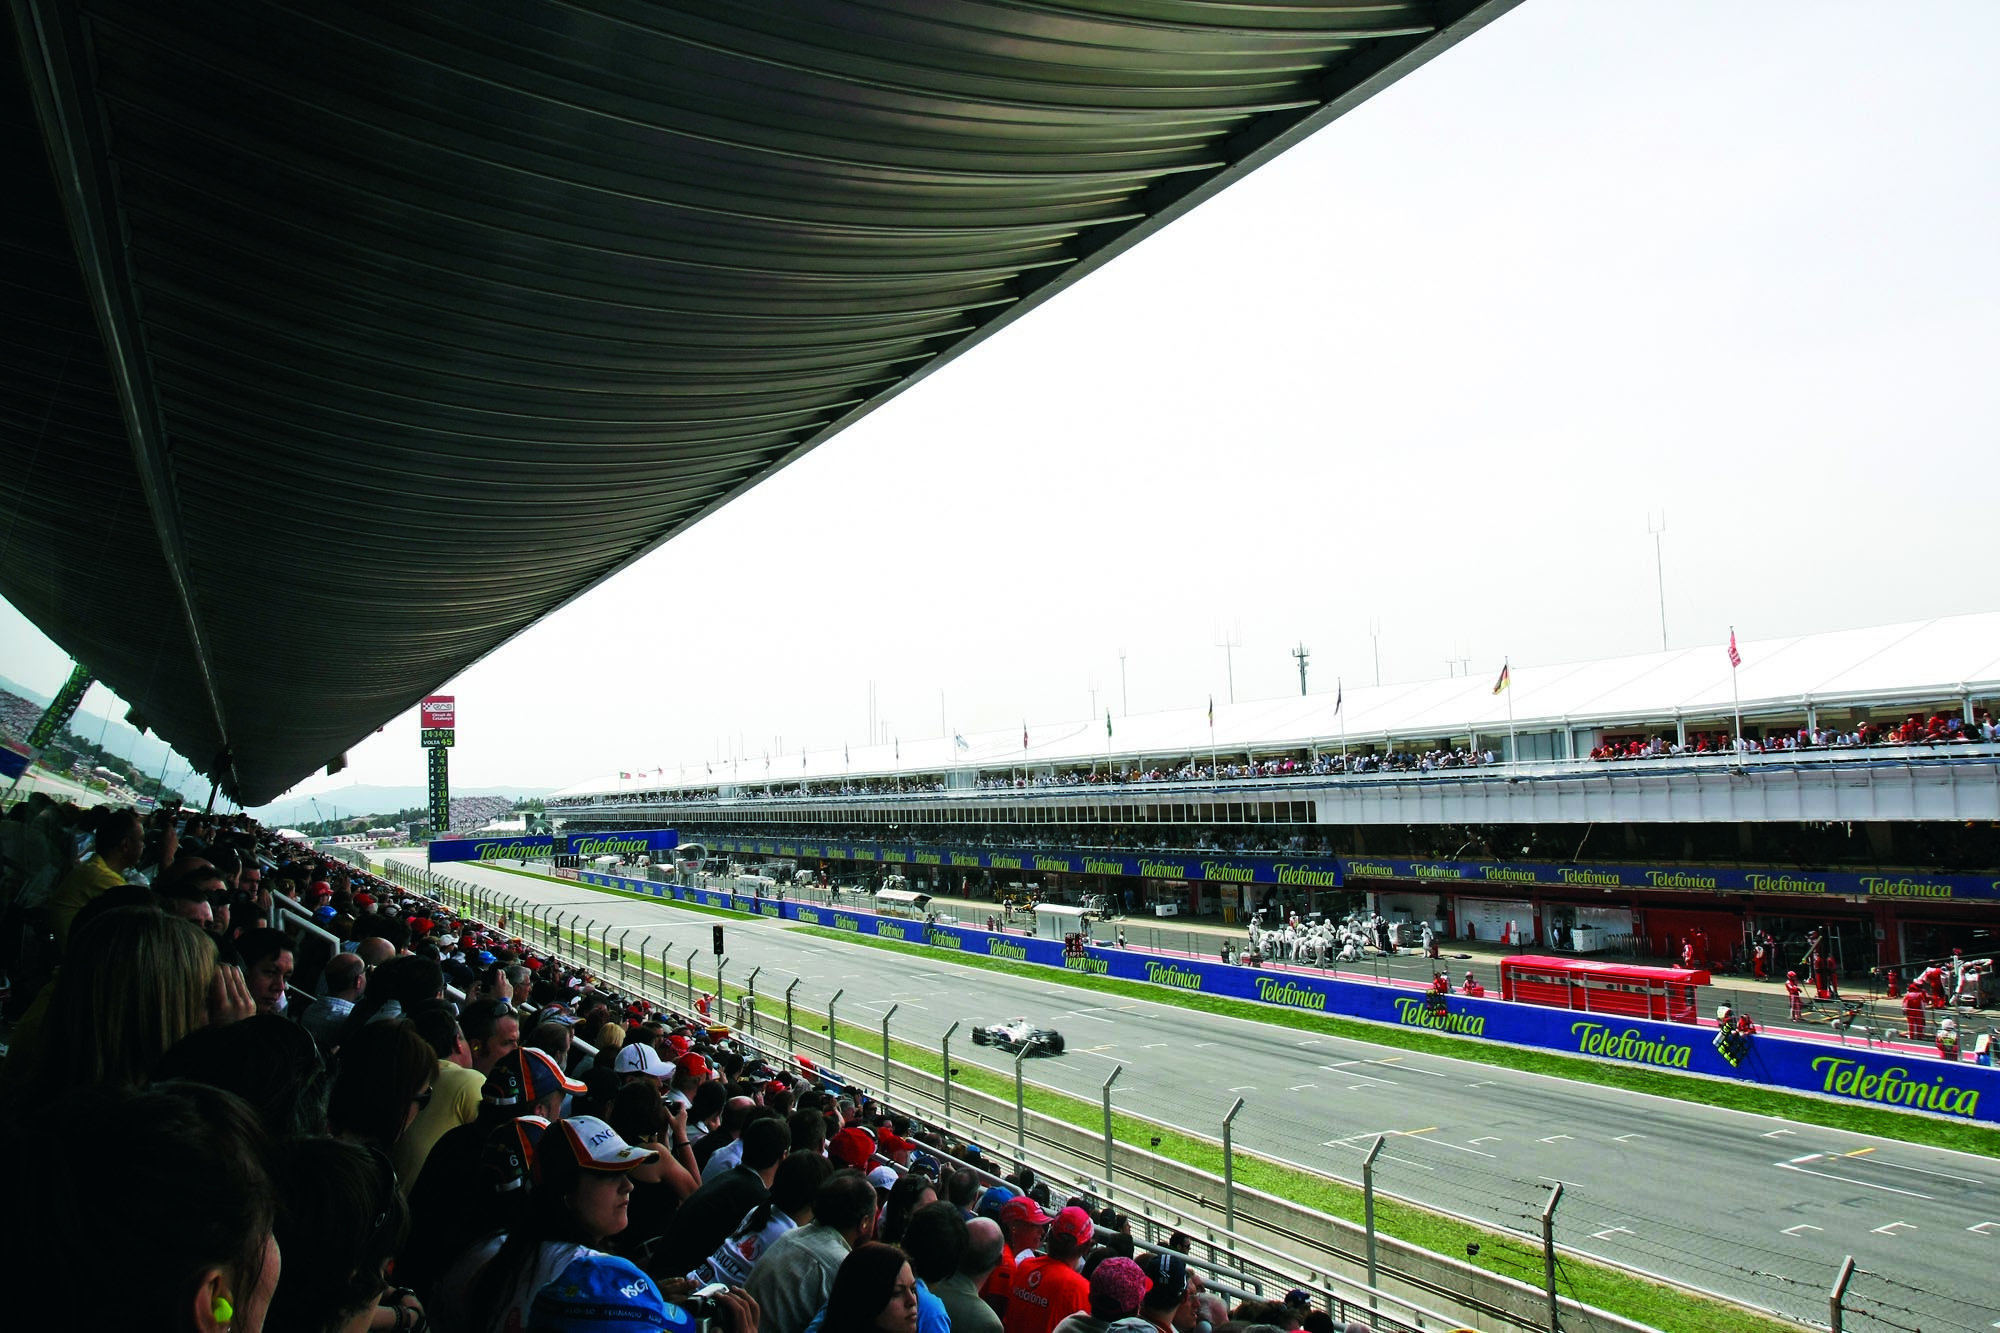 Main Grandstand JK Low